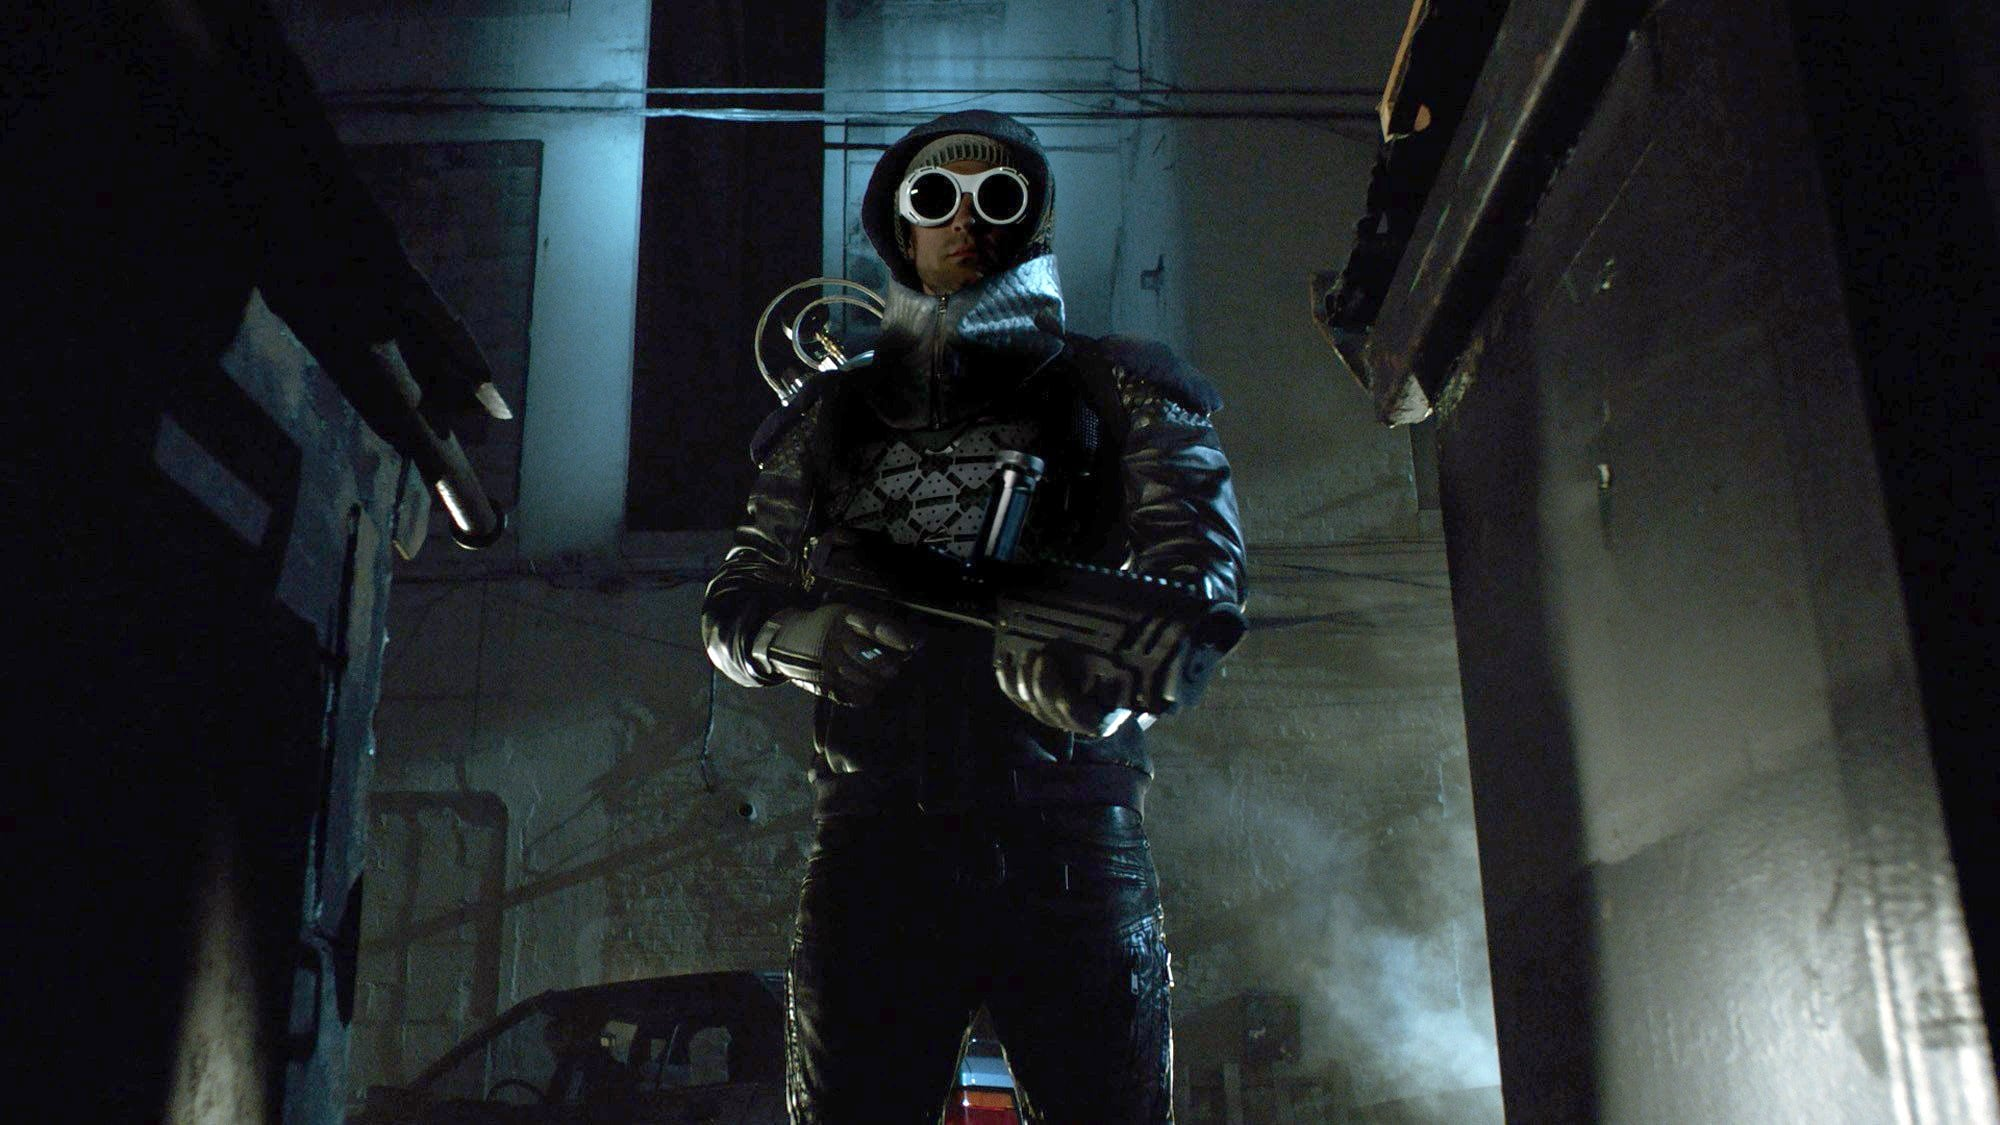 Gotham - Season 2 Episode 12 : Wrath of the Villains: Mr. Freeze